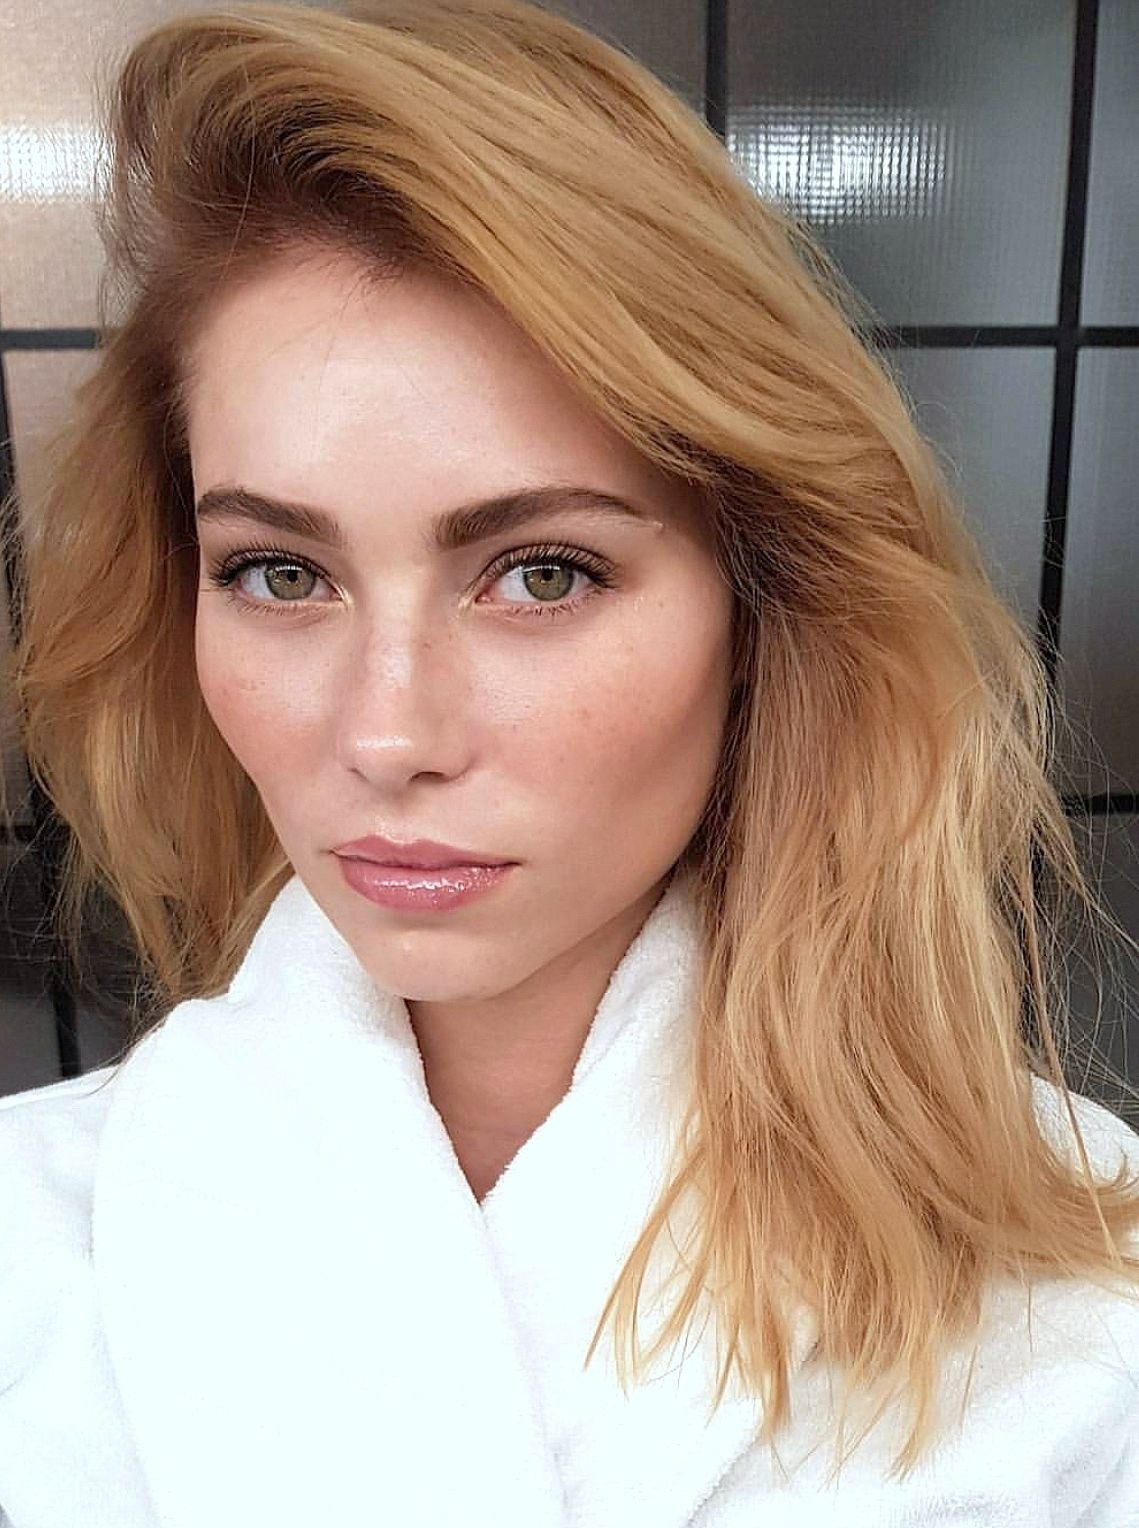 Pin By Deborah Praha?makeup Ideas, Skincare Tips & Street Style On inside What Color Eyeshadow For Hazel Eyes And Strawberry Blonde Hair